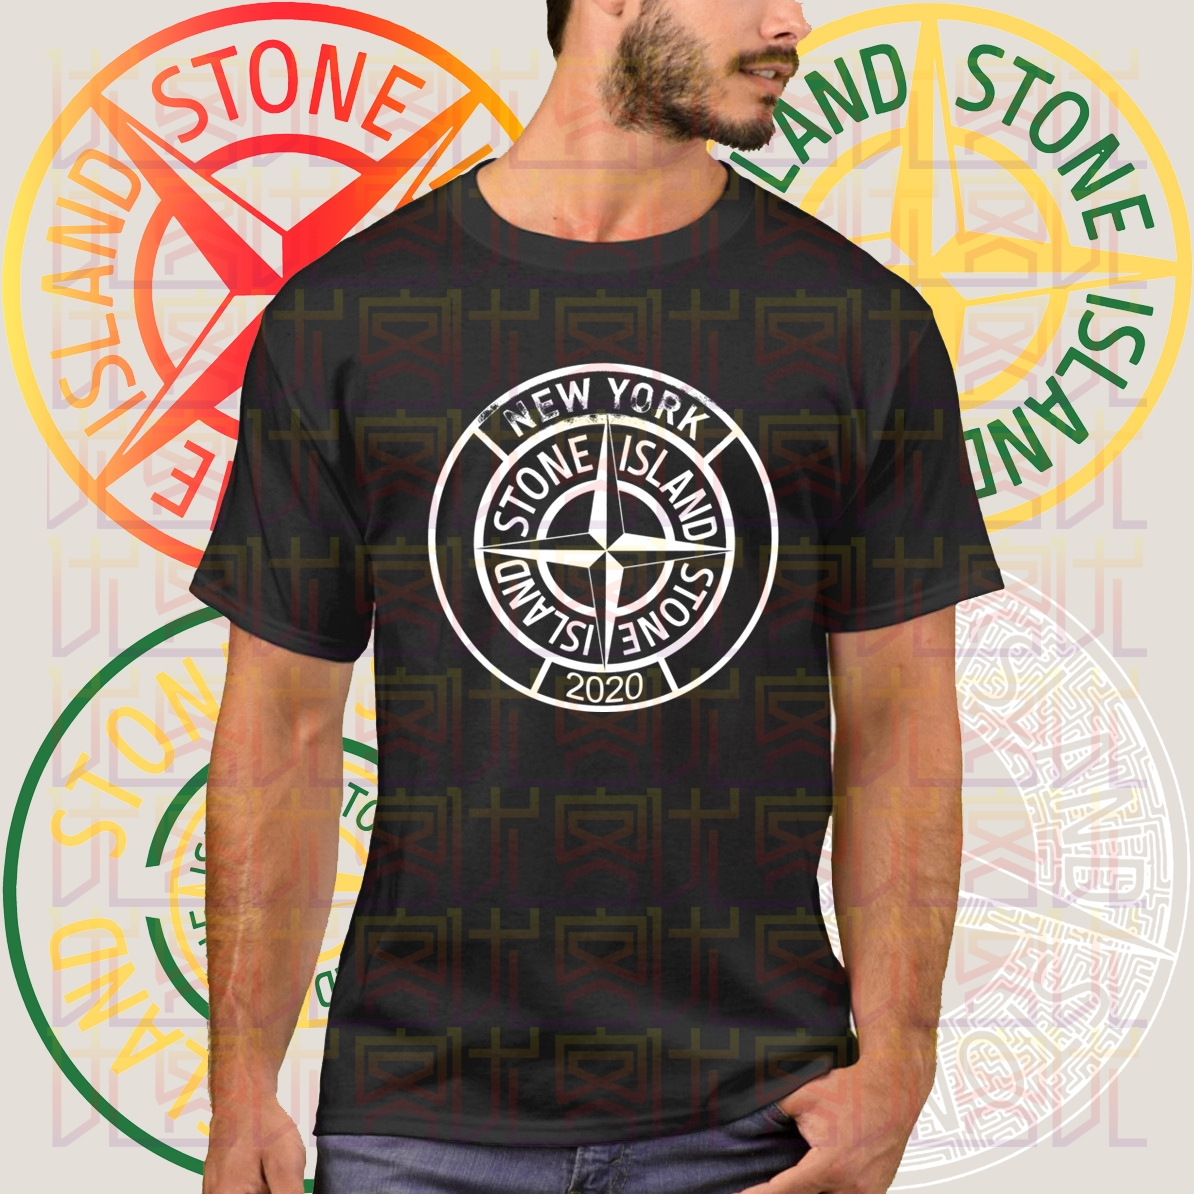 2020 New Stone-Island Logo Summer Print Black T-Shirt Clothes Popular Shirt Cotton Tees Amazing Short Sleeve Unique Men Tops